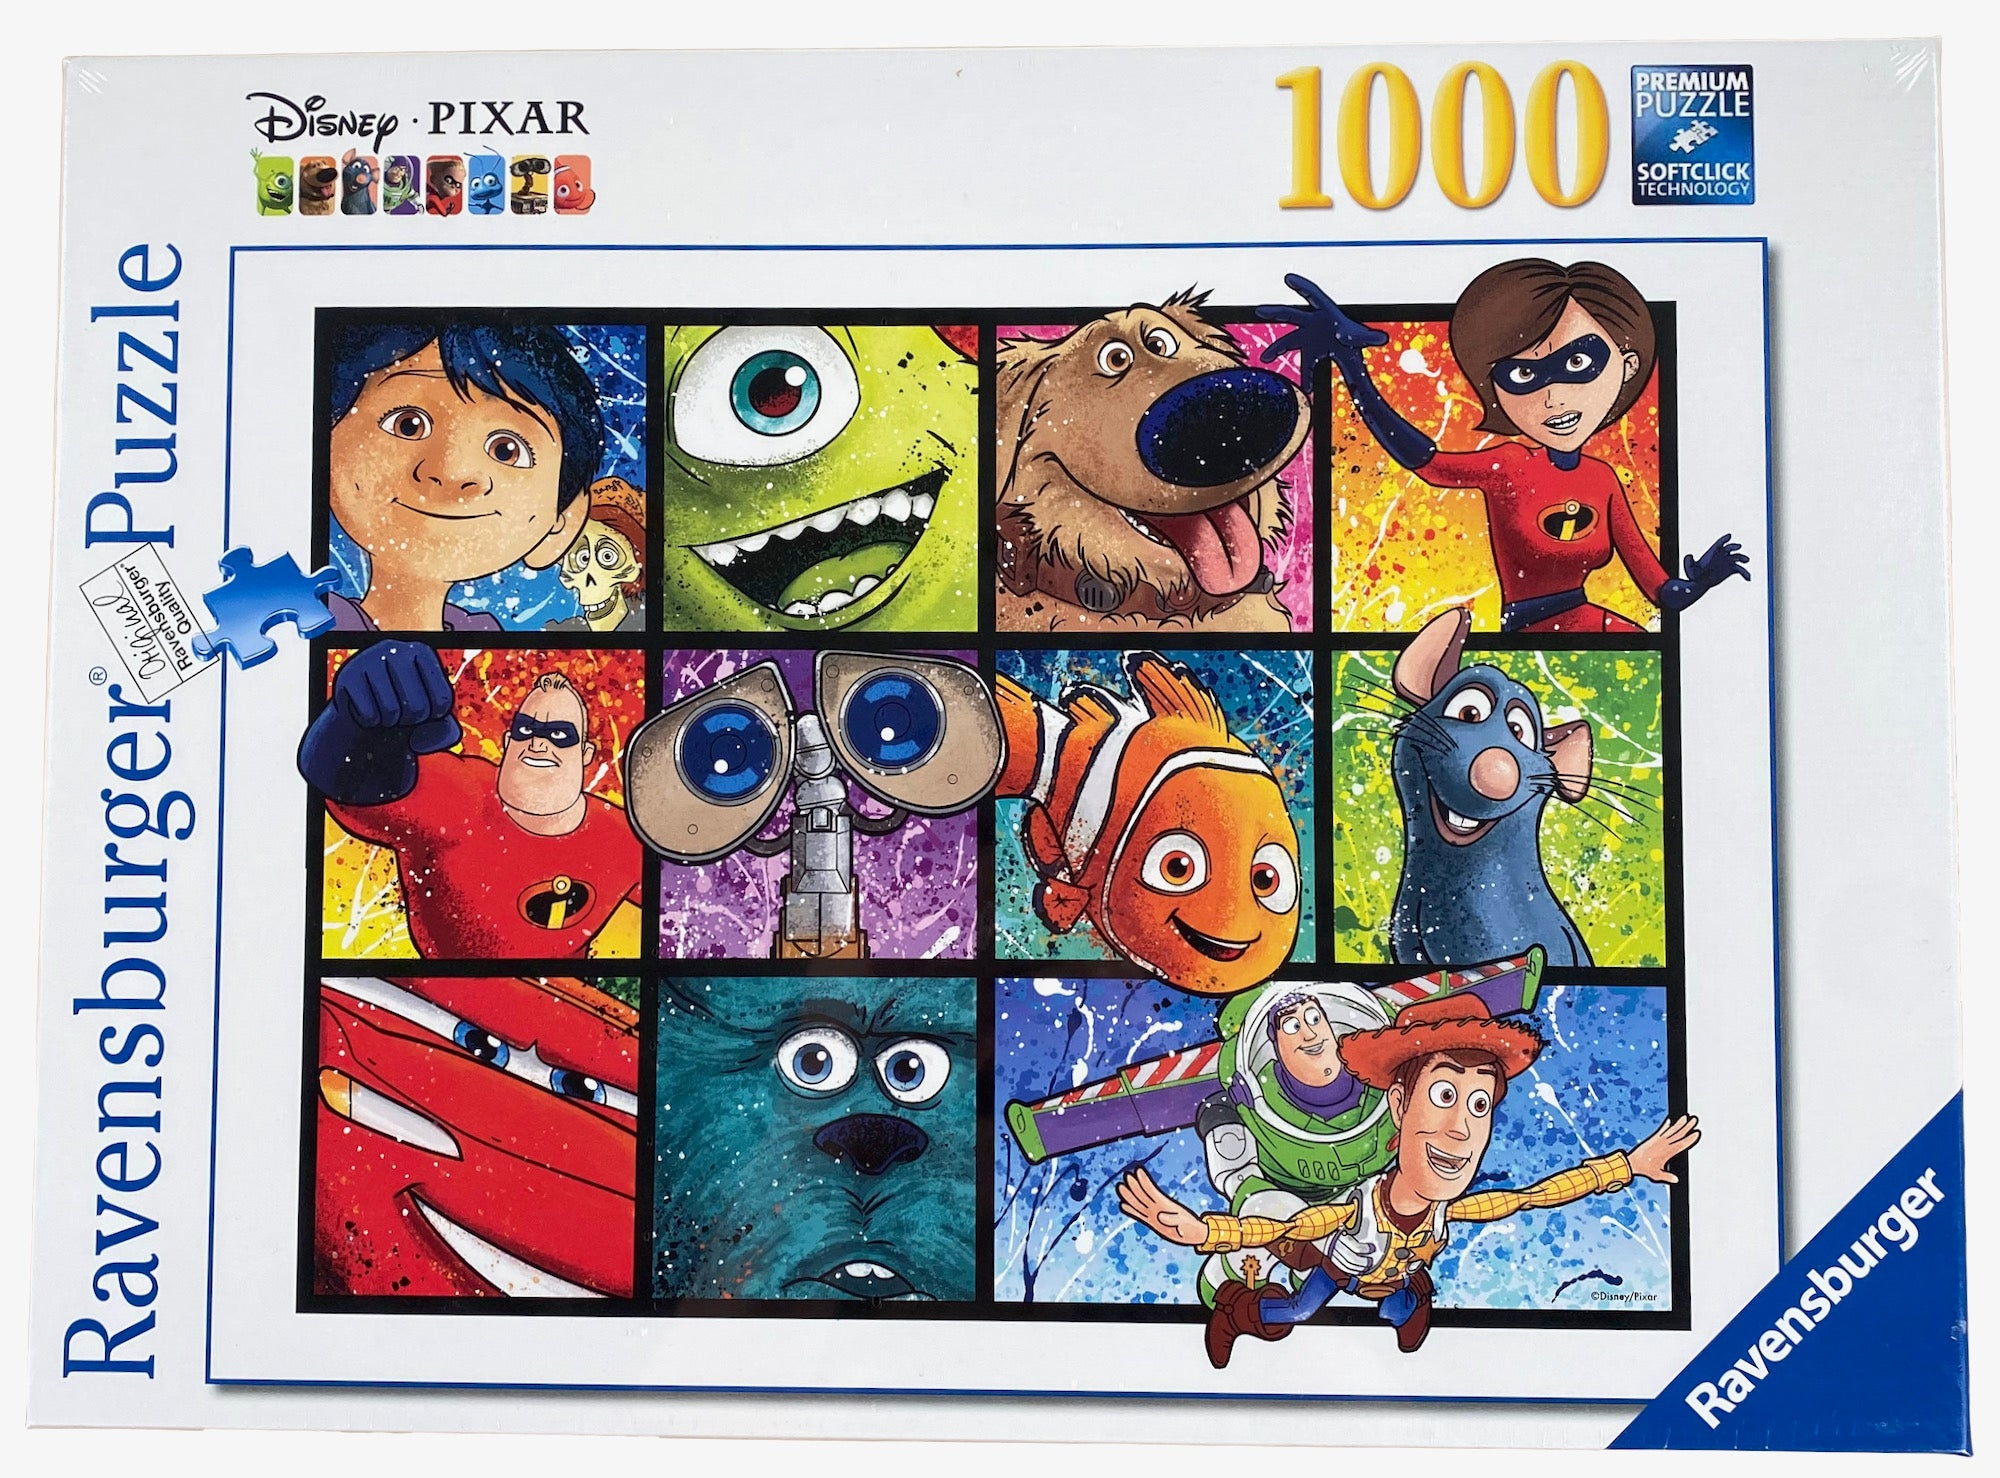 Disney Pixar Splatter Art 1000 Piece Puzzle